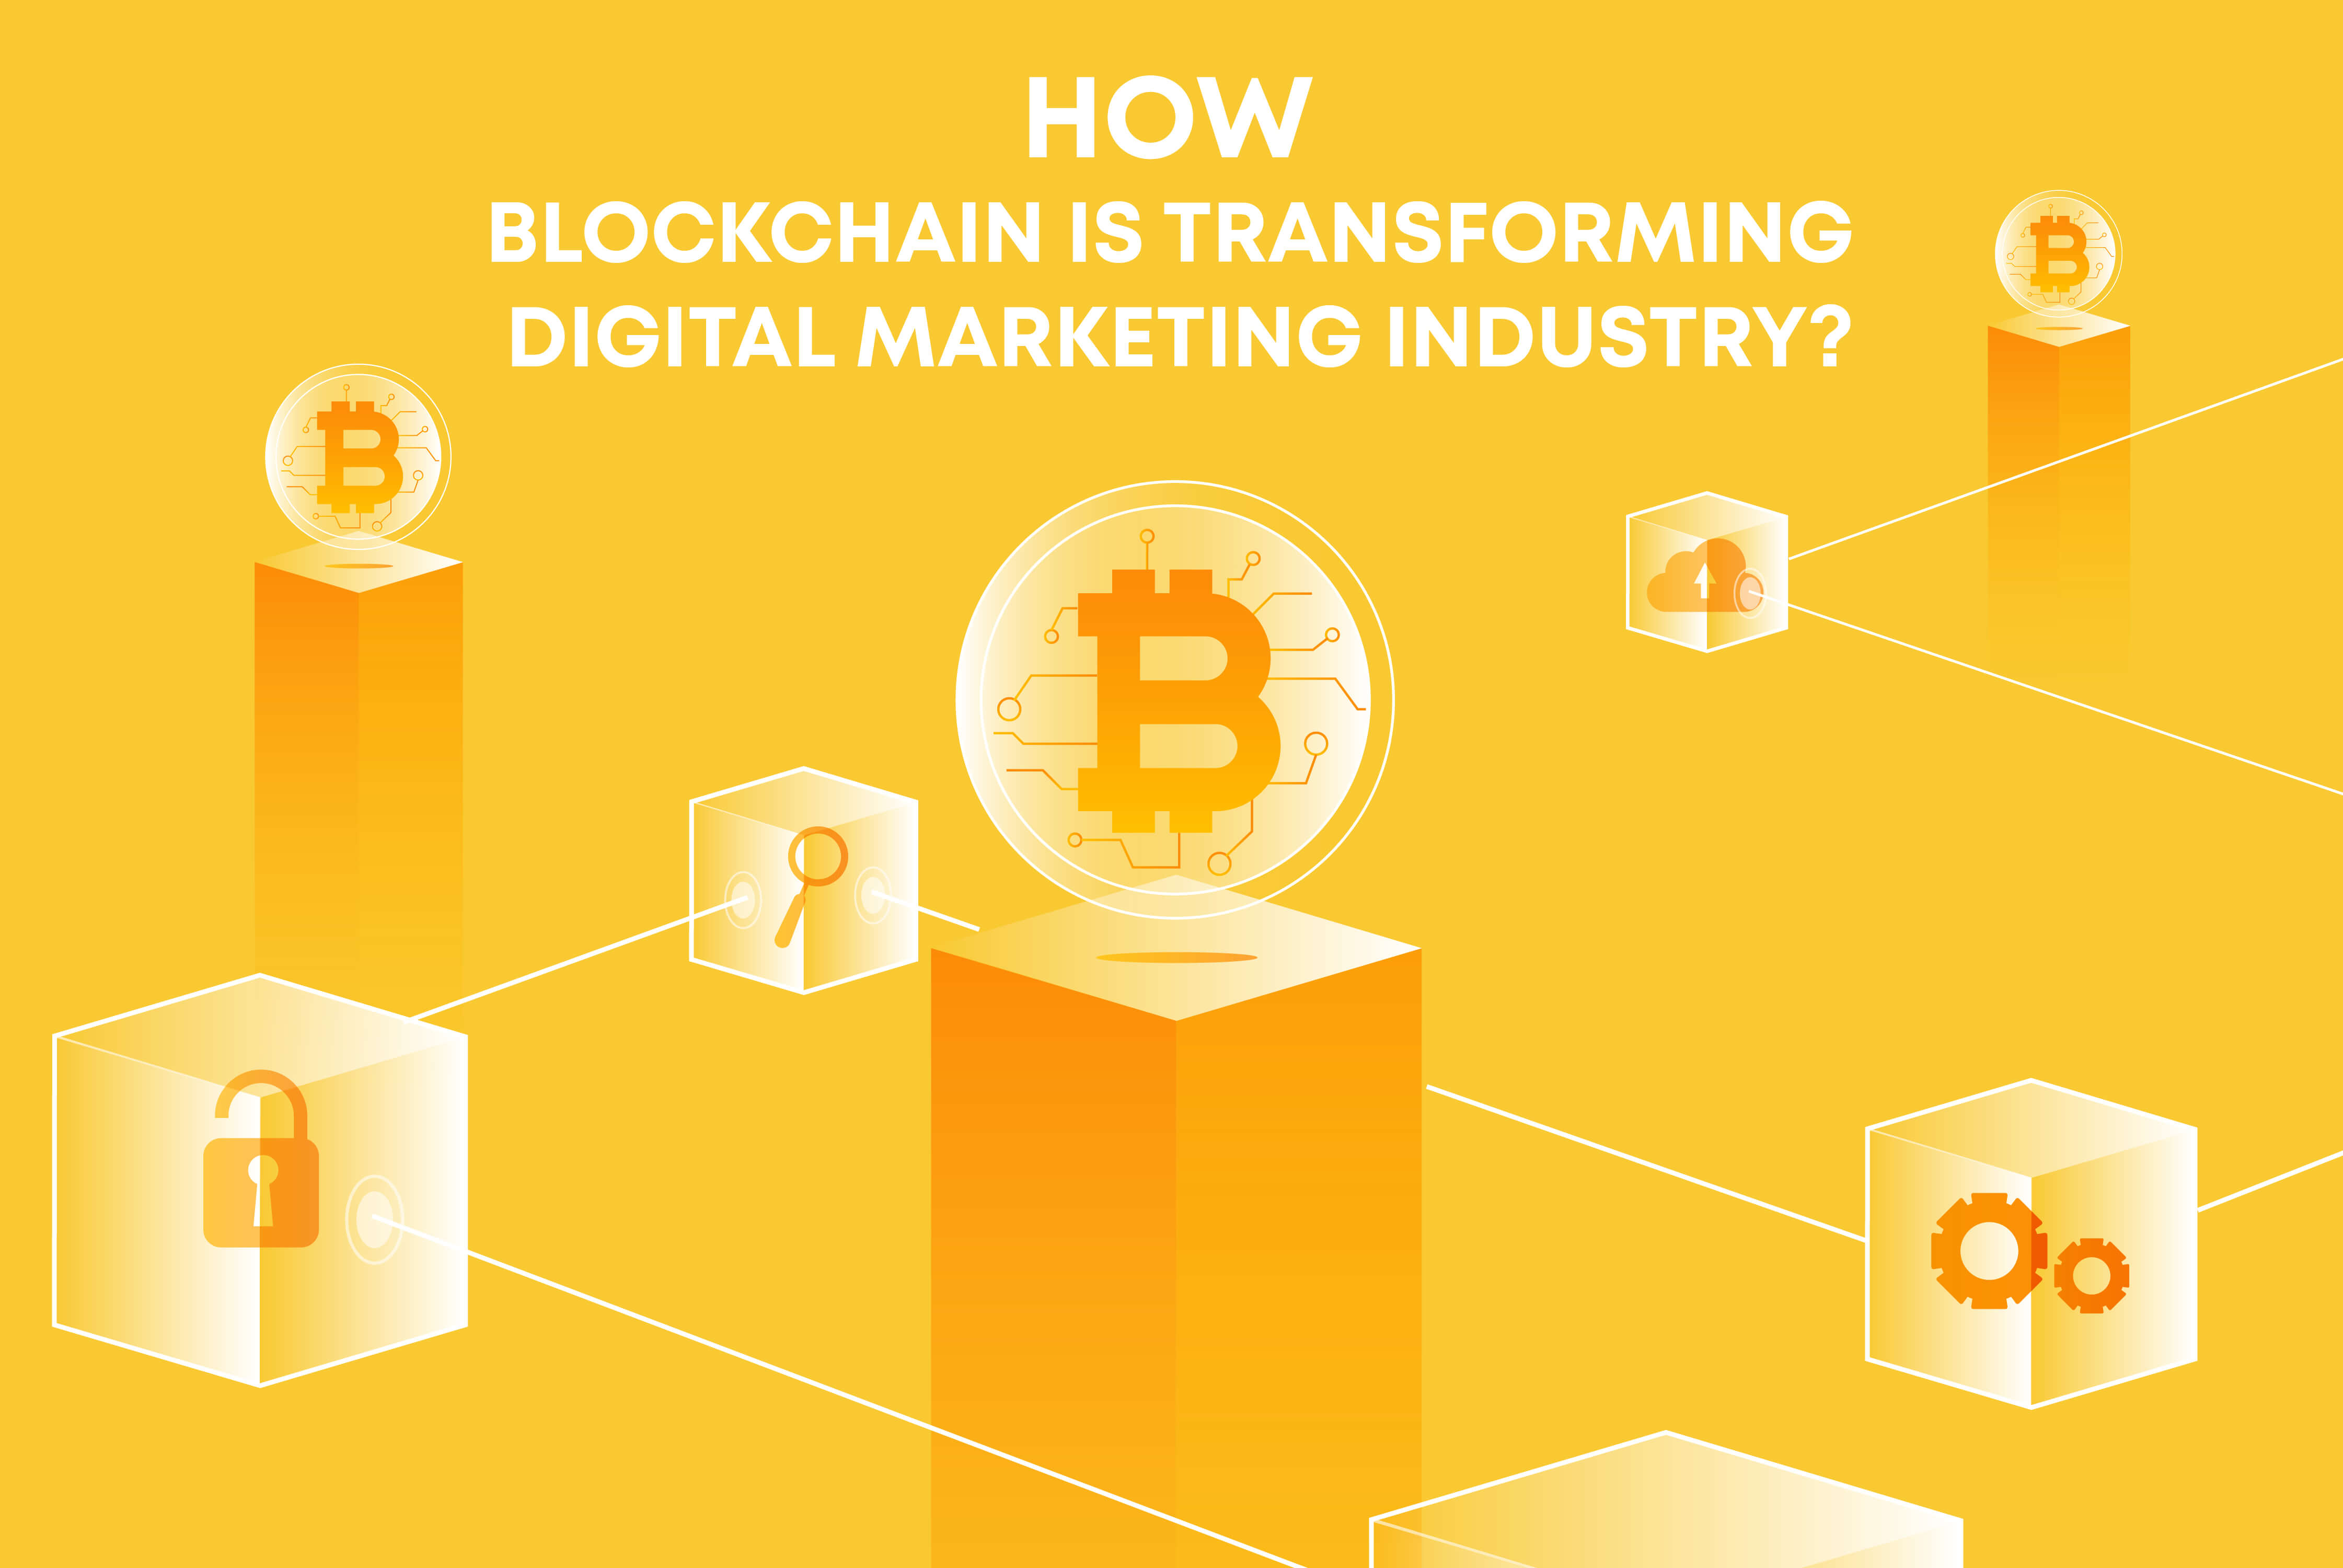 Blockchain Transforming the Digital Marketing Industry